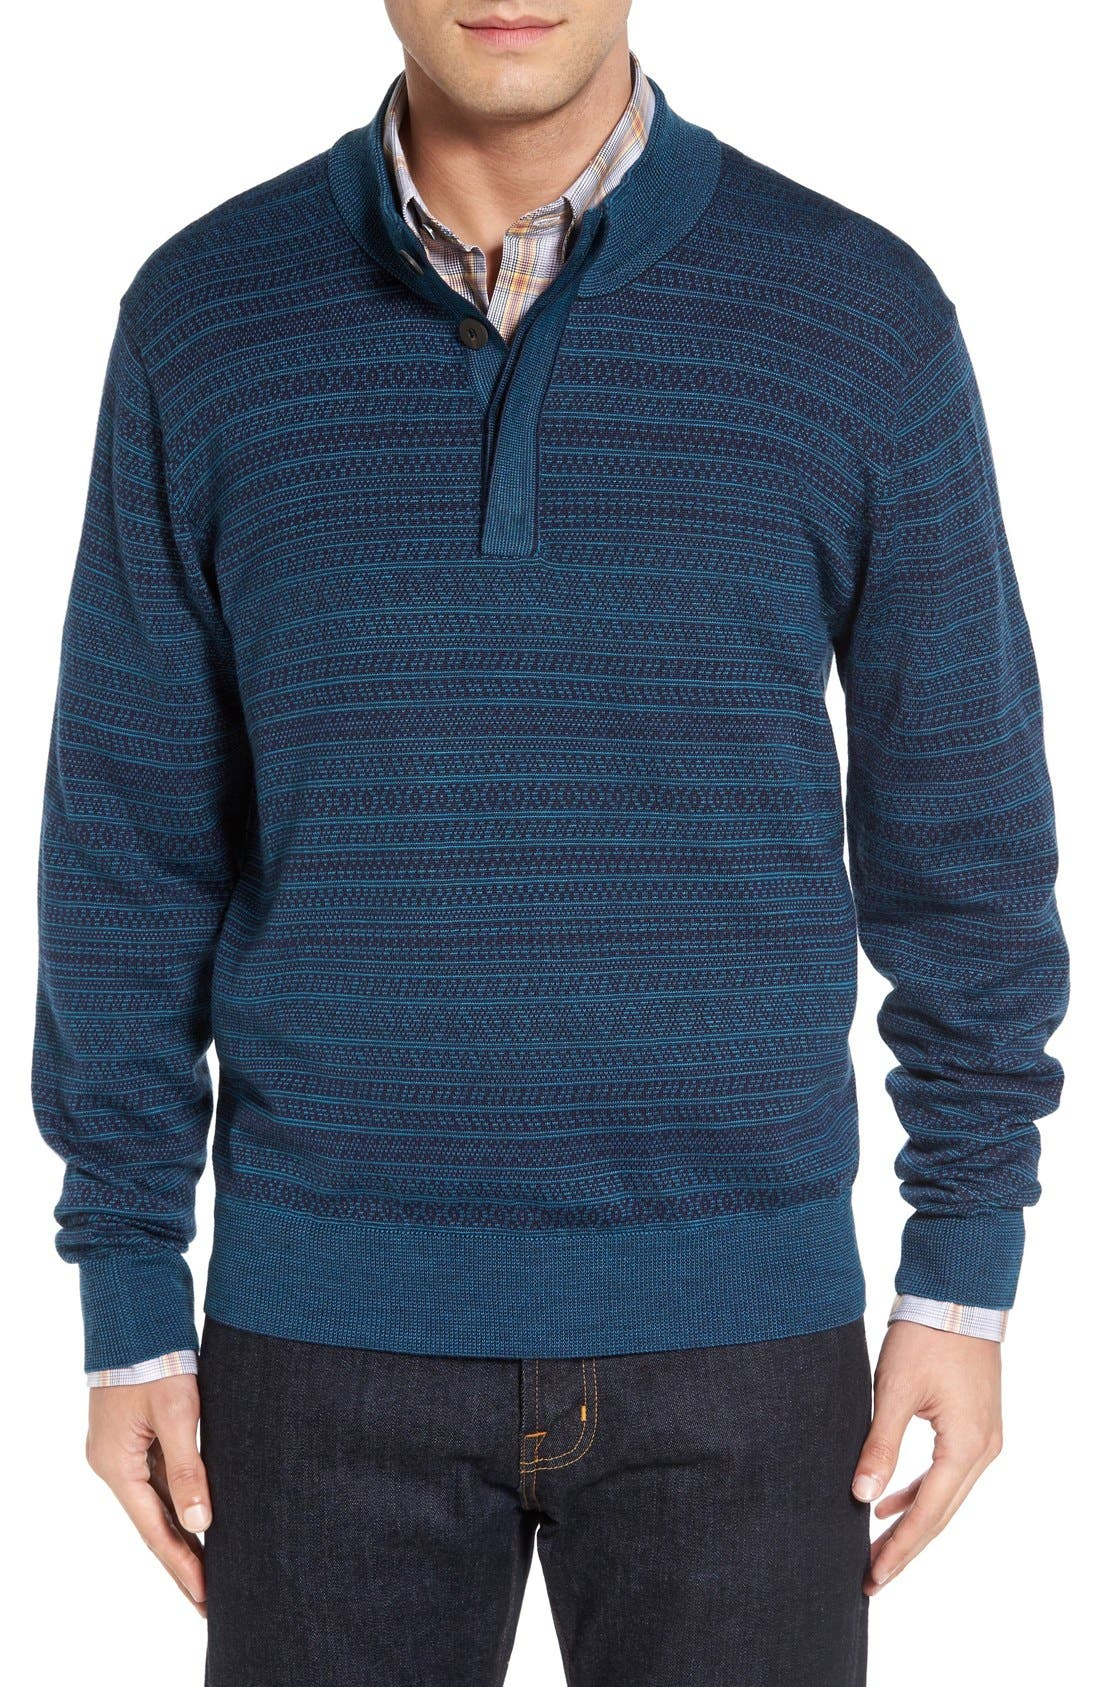 Main Image - Cutter & Buck 'Douglas Forest' Jacquard Wool Blend Sweater (Big & Tall)